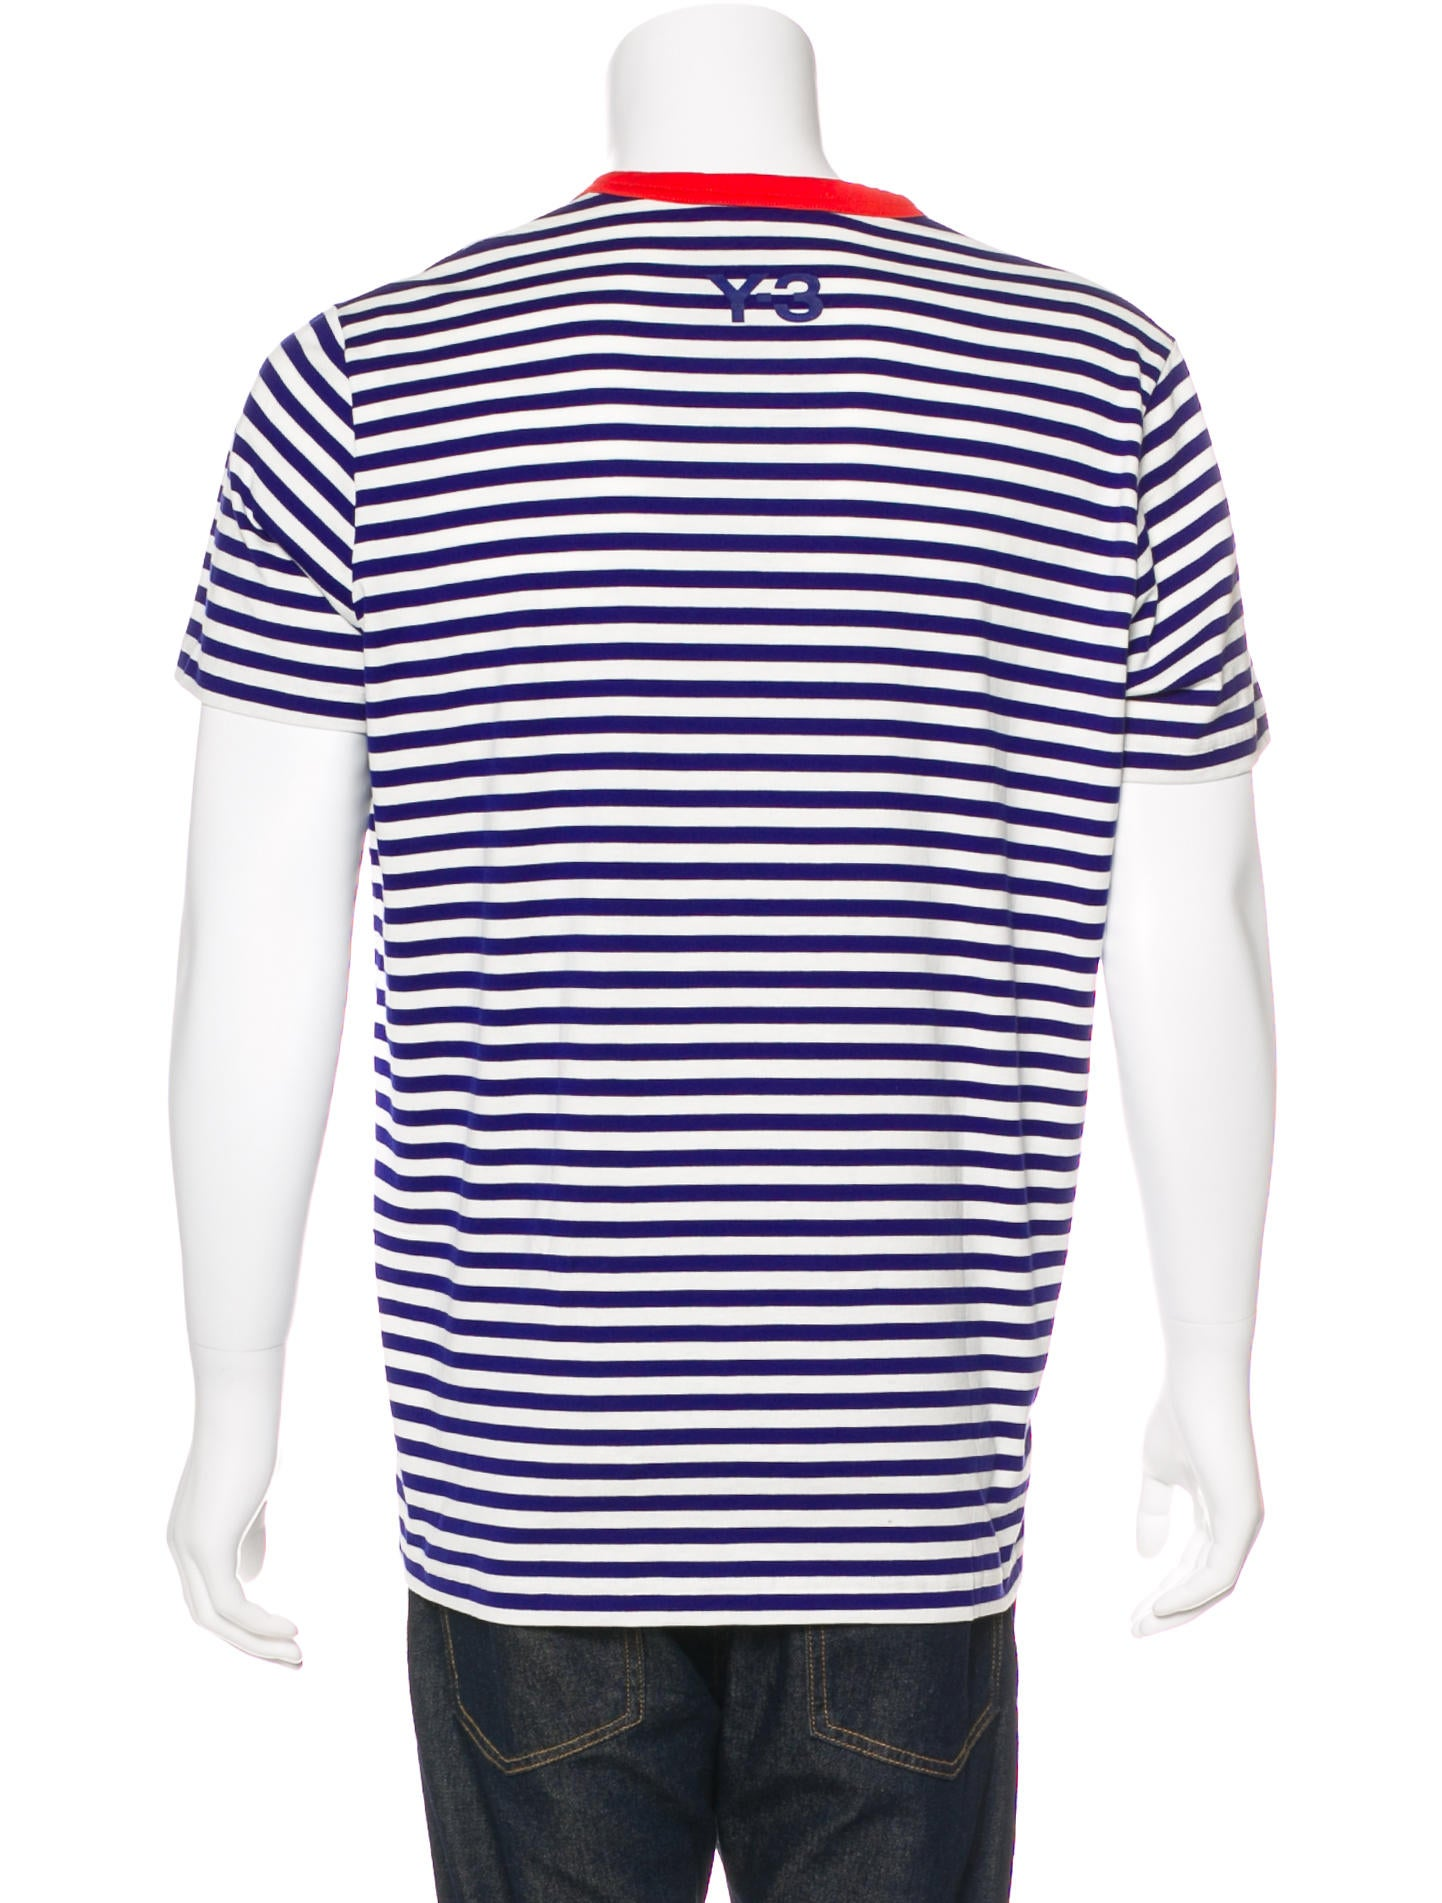 Y 3 striped scoop neck t shirt clothing wy321529 the for Scoop neck t shirt